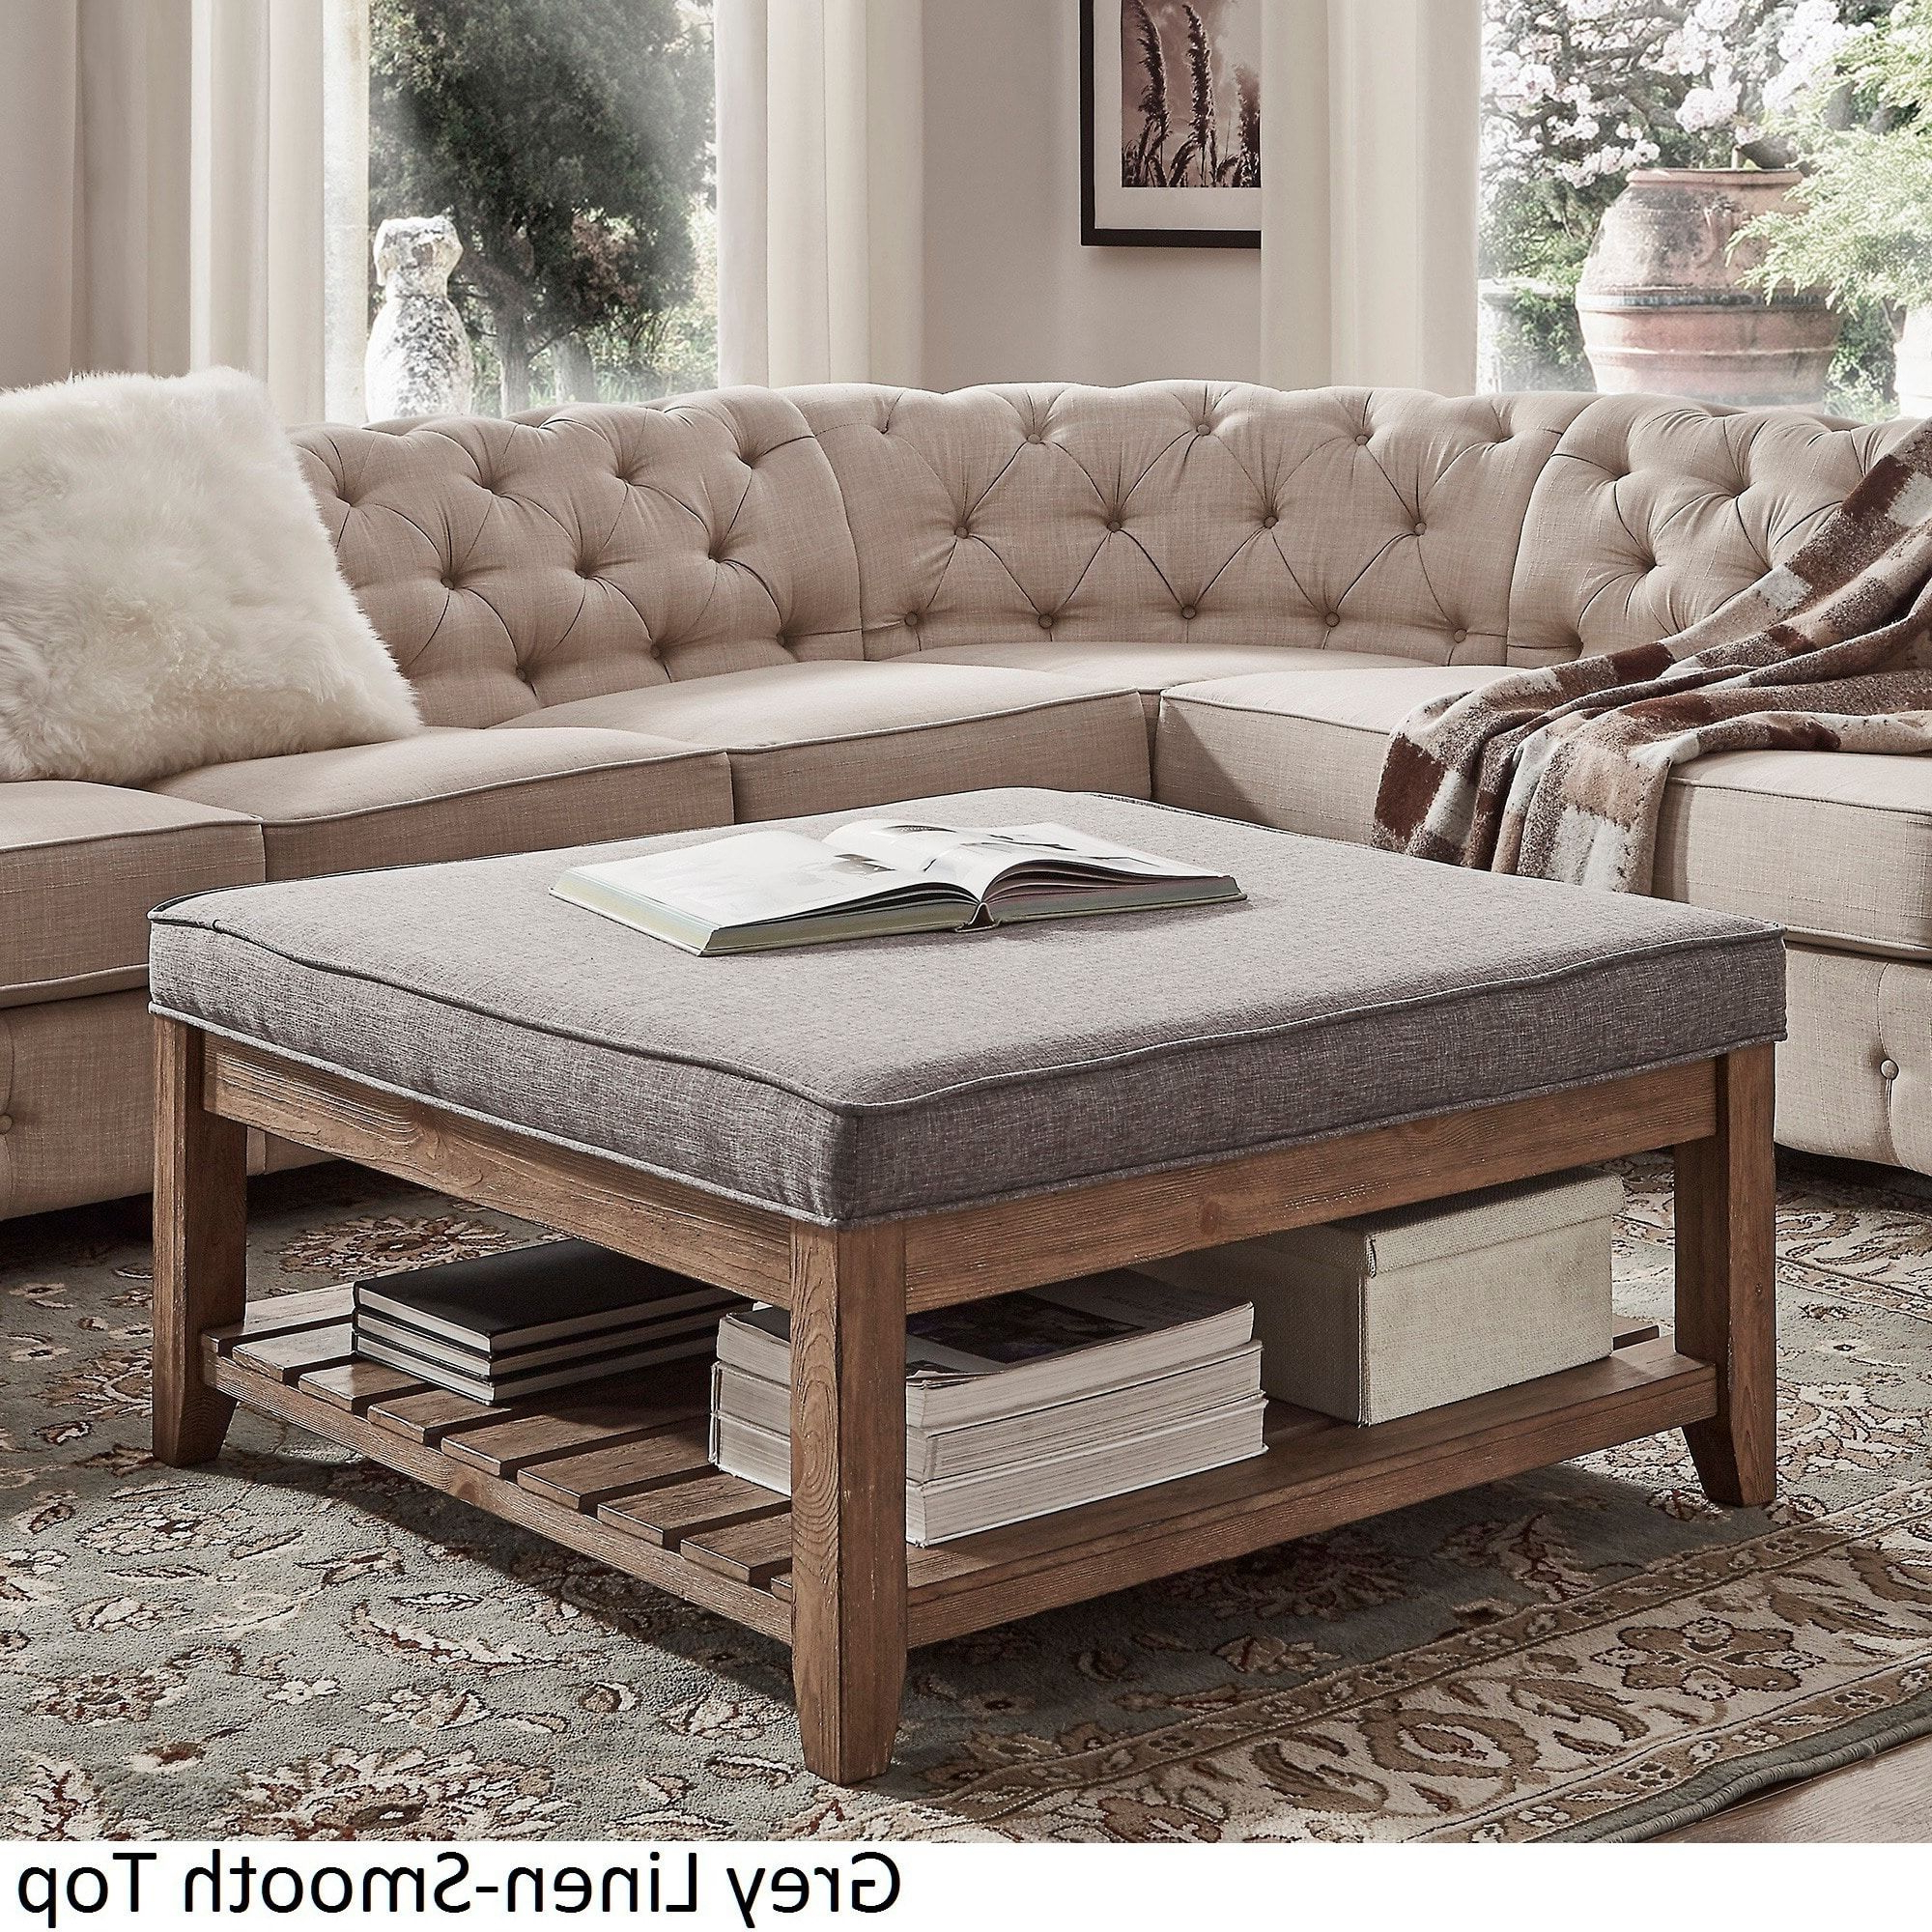 Widely Used Lennon Pine Square Storage Ottoman Coffee Tables For Lennon Pine Planked Storage Ottoman Coffee Tableinspire (View 20 of 20)